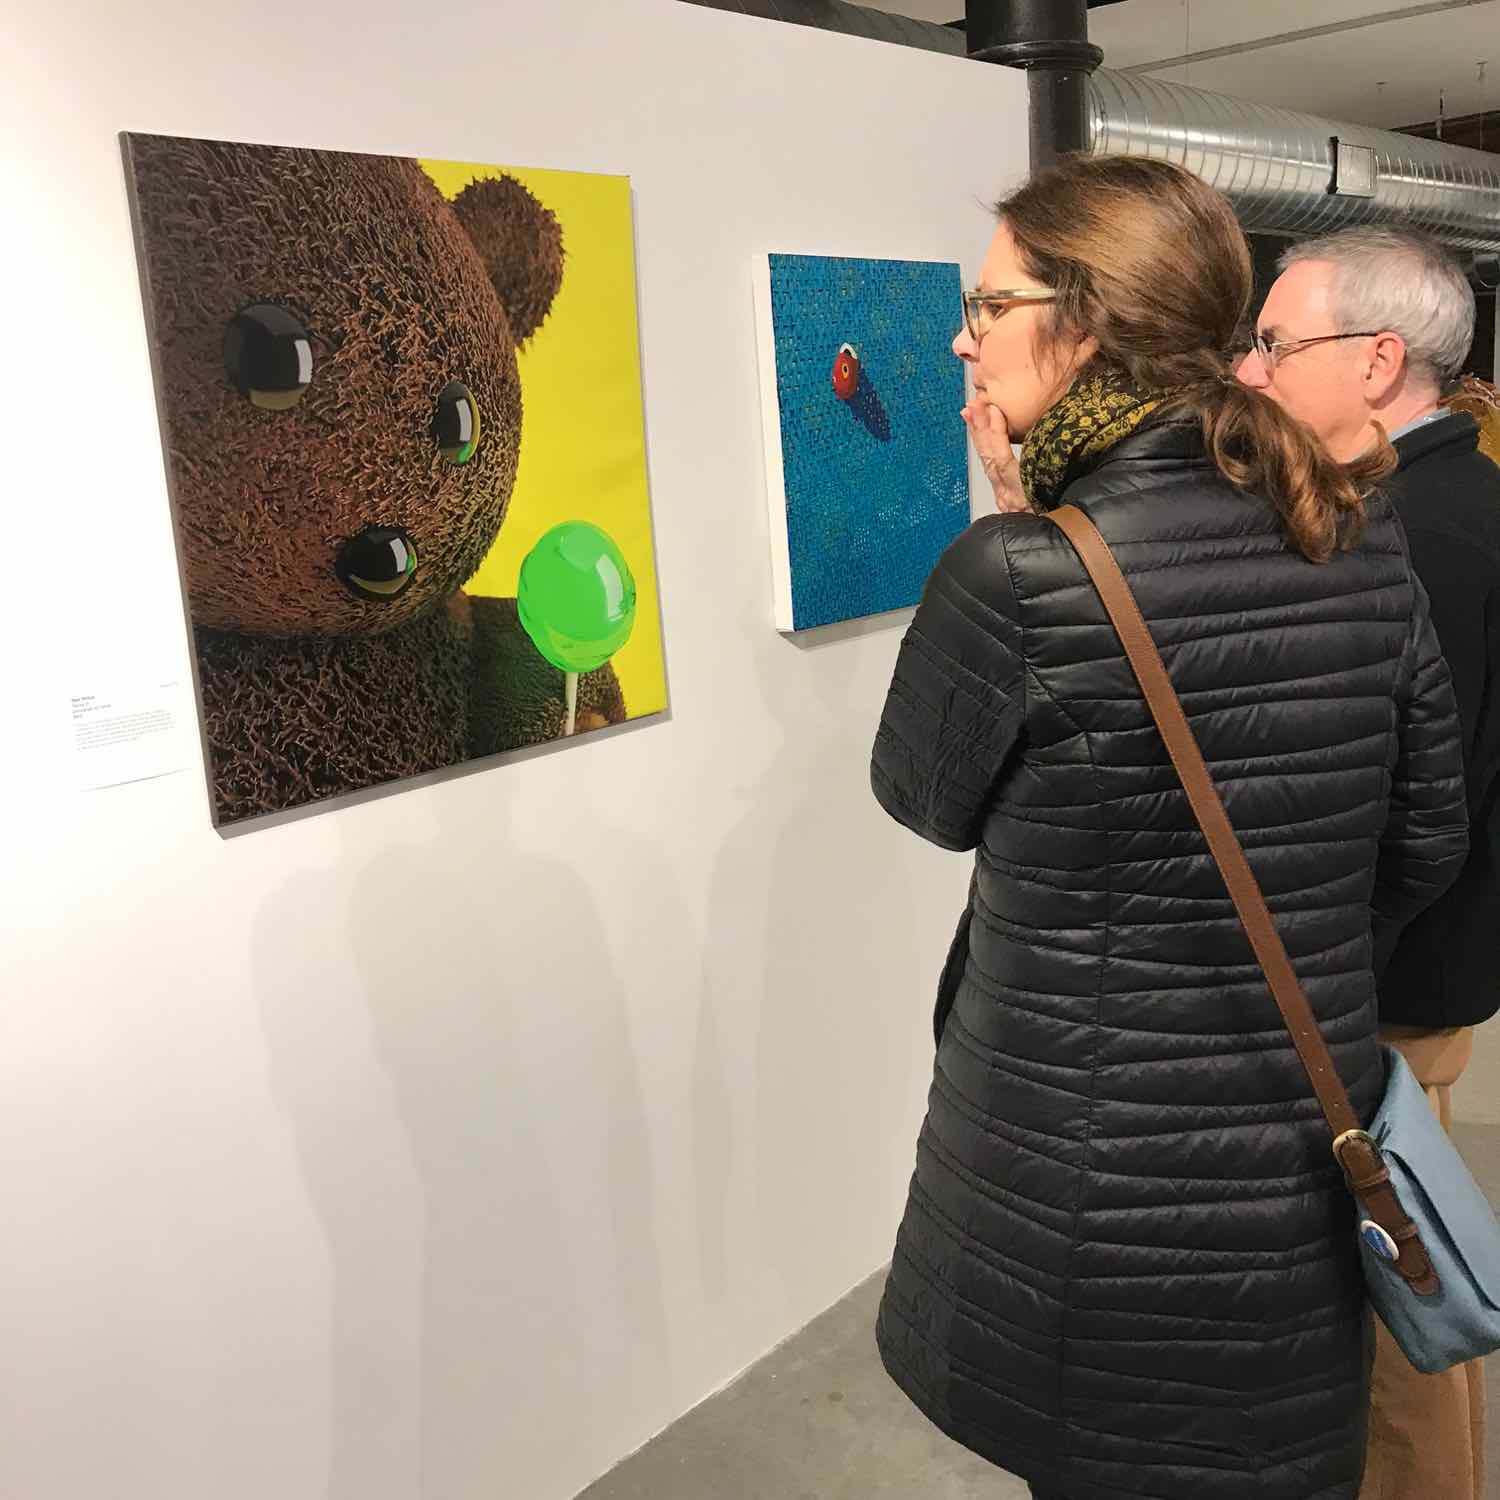 Sharing #1 at Fountain Street Gallery